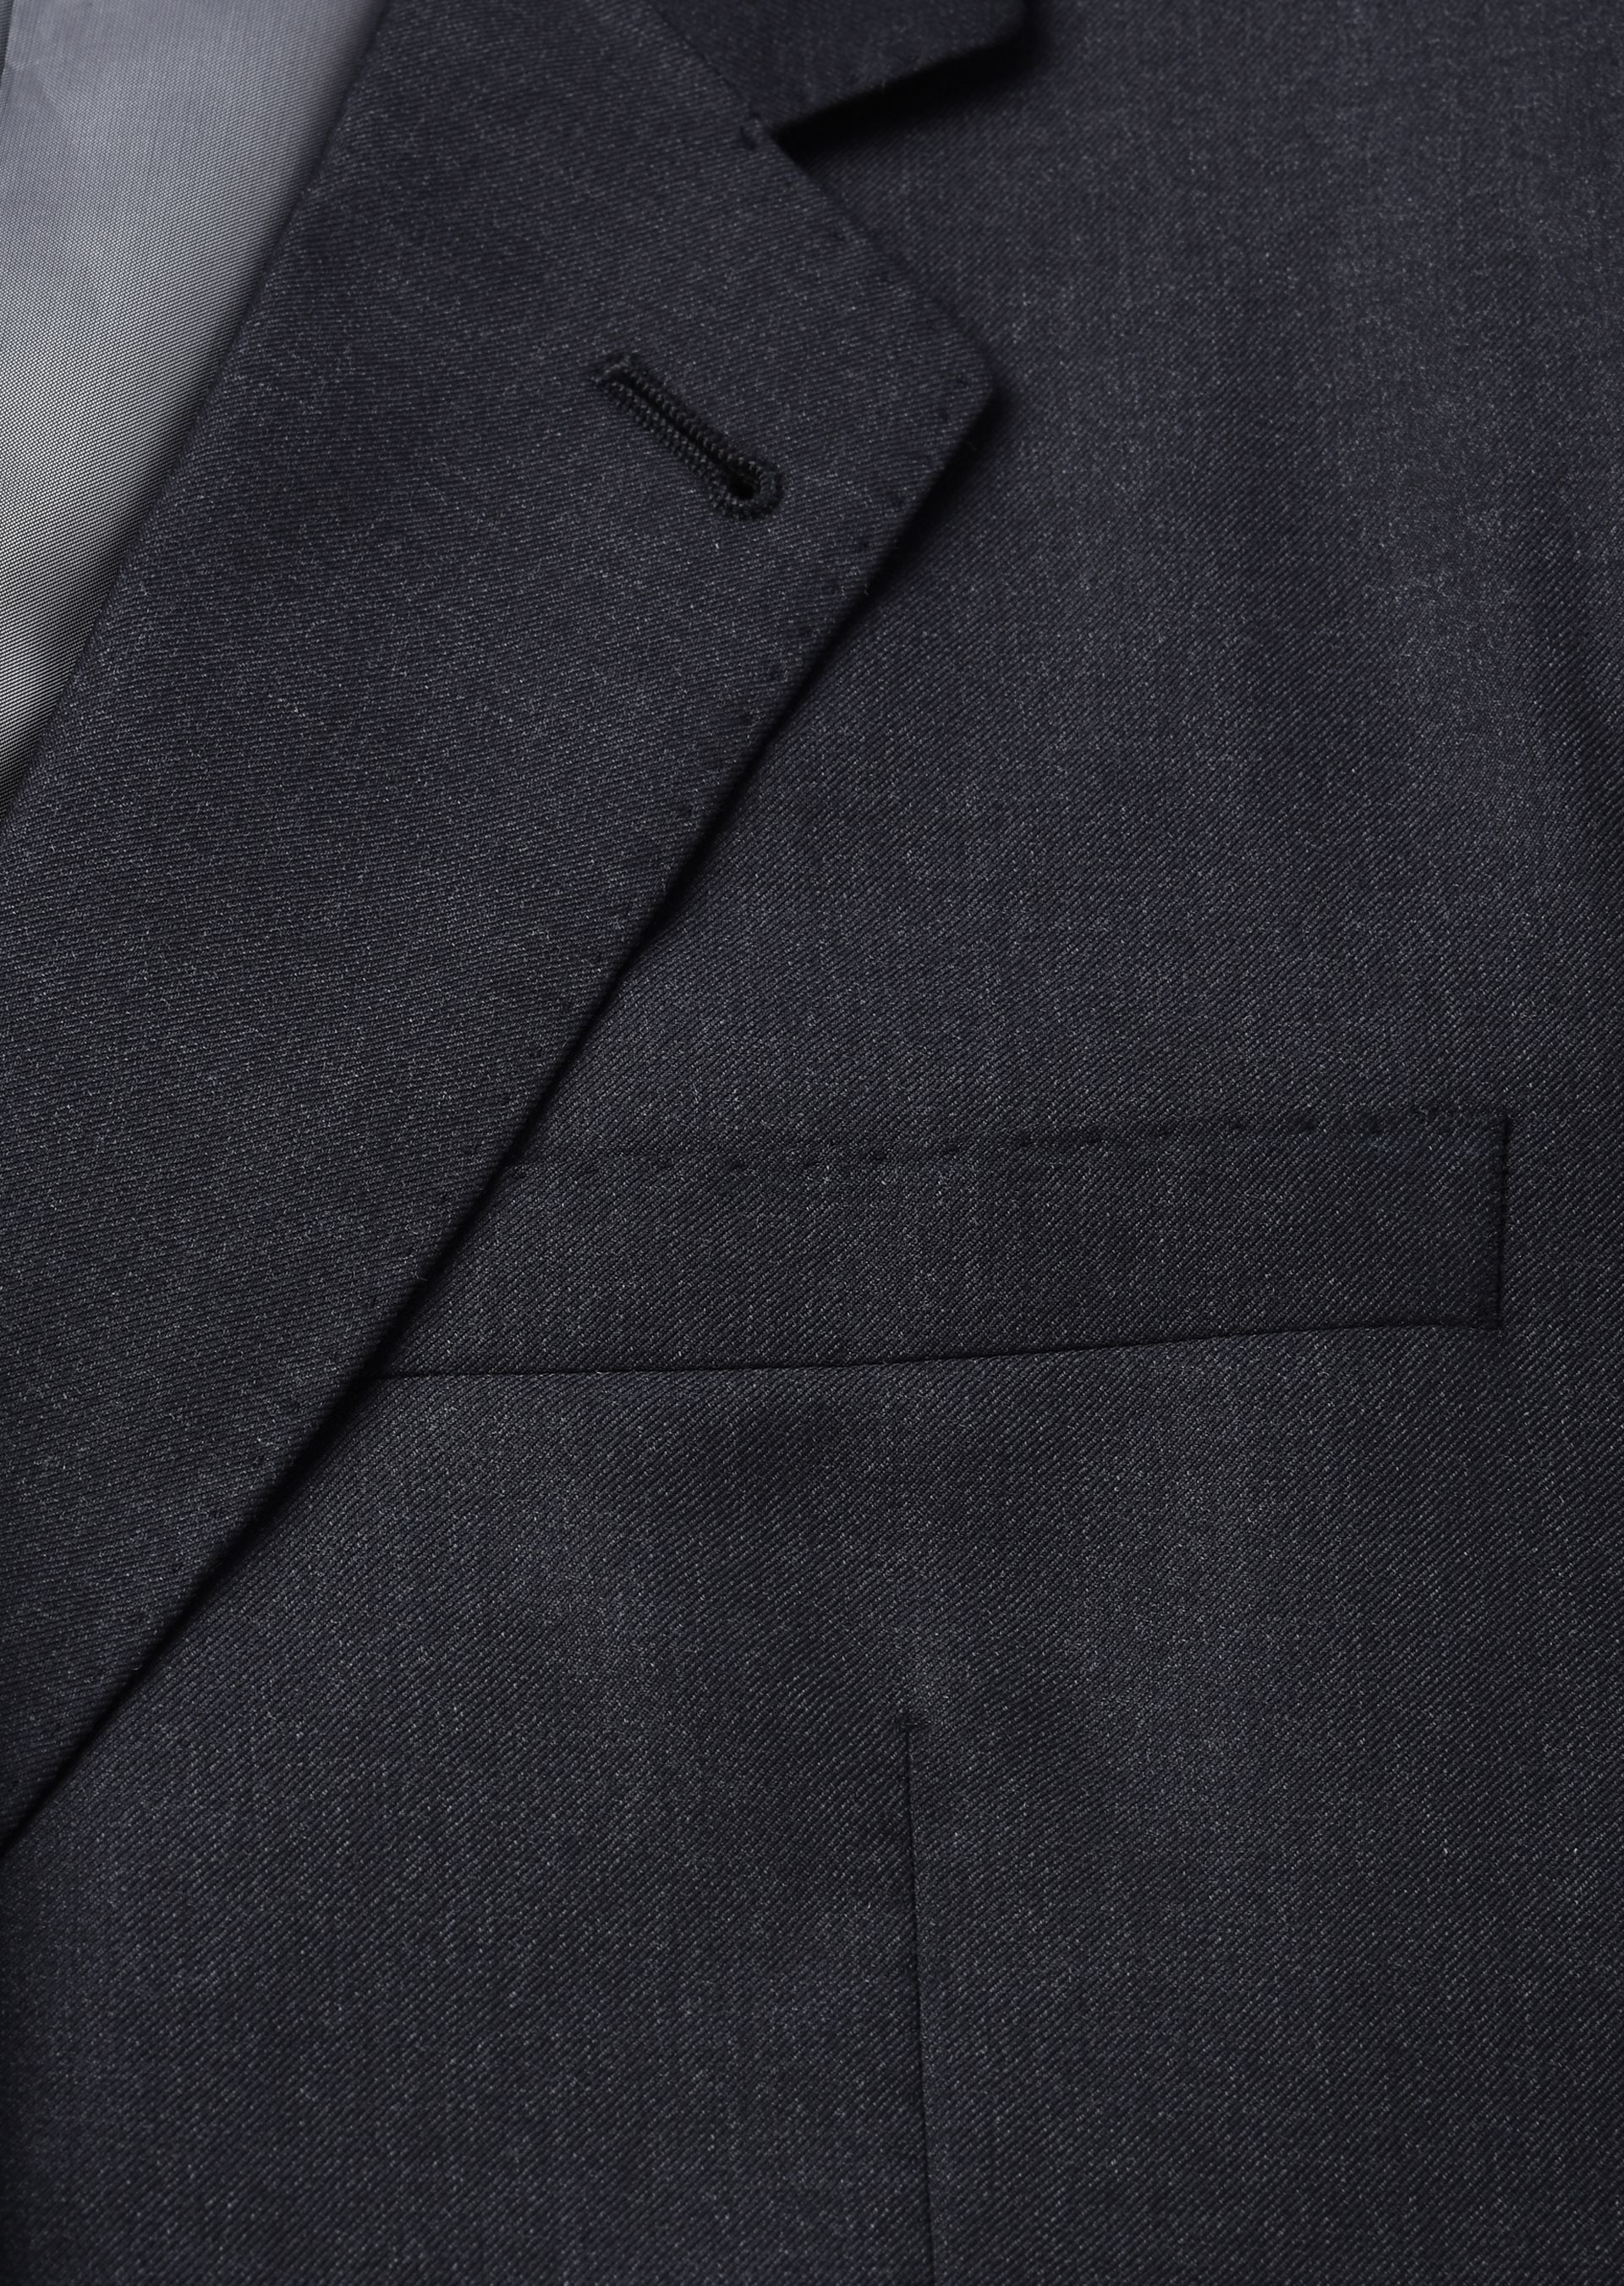 GIORGIO ARMANI WALL STREET WOOL AND CASHMERE SUIT Suit U h